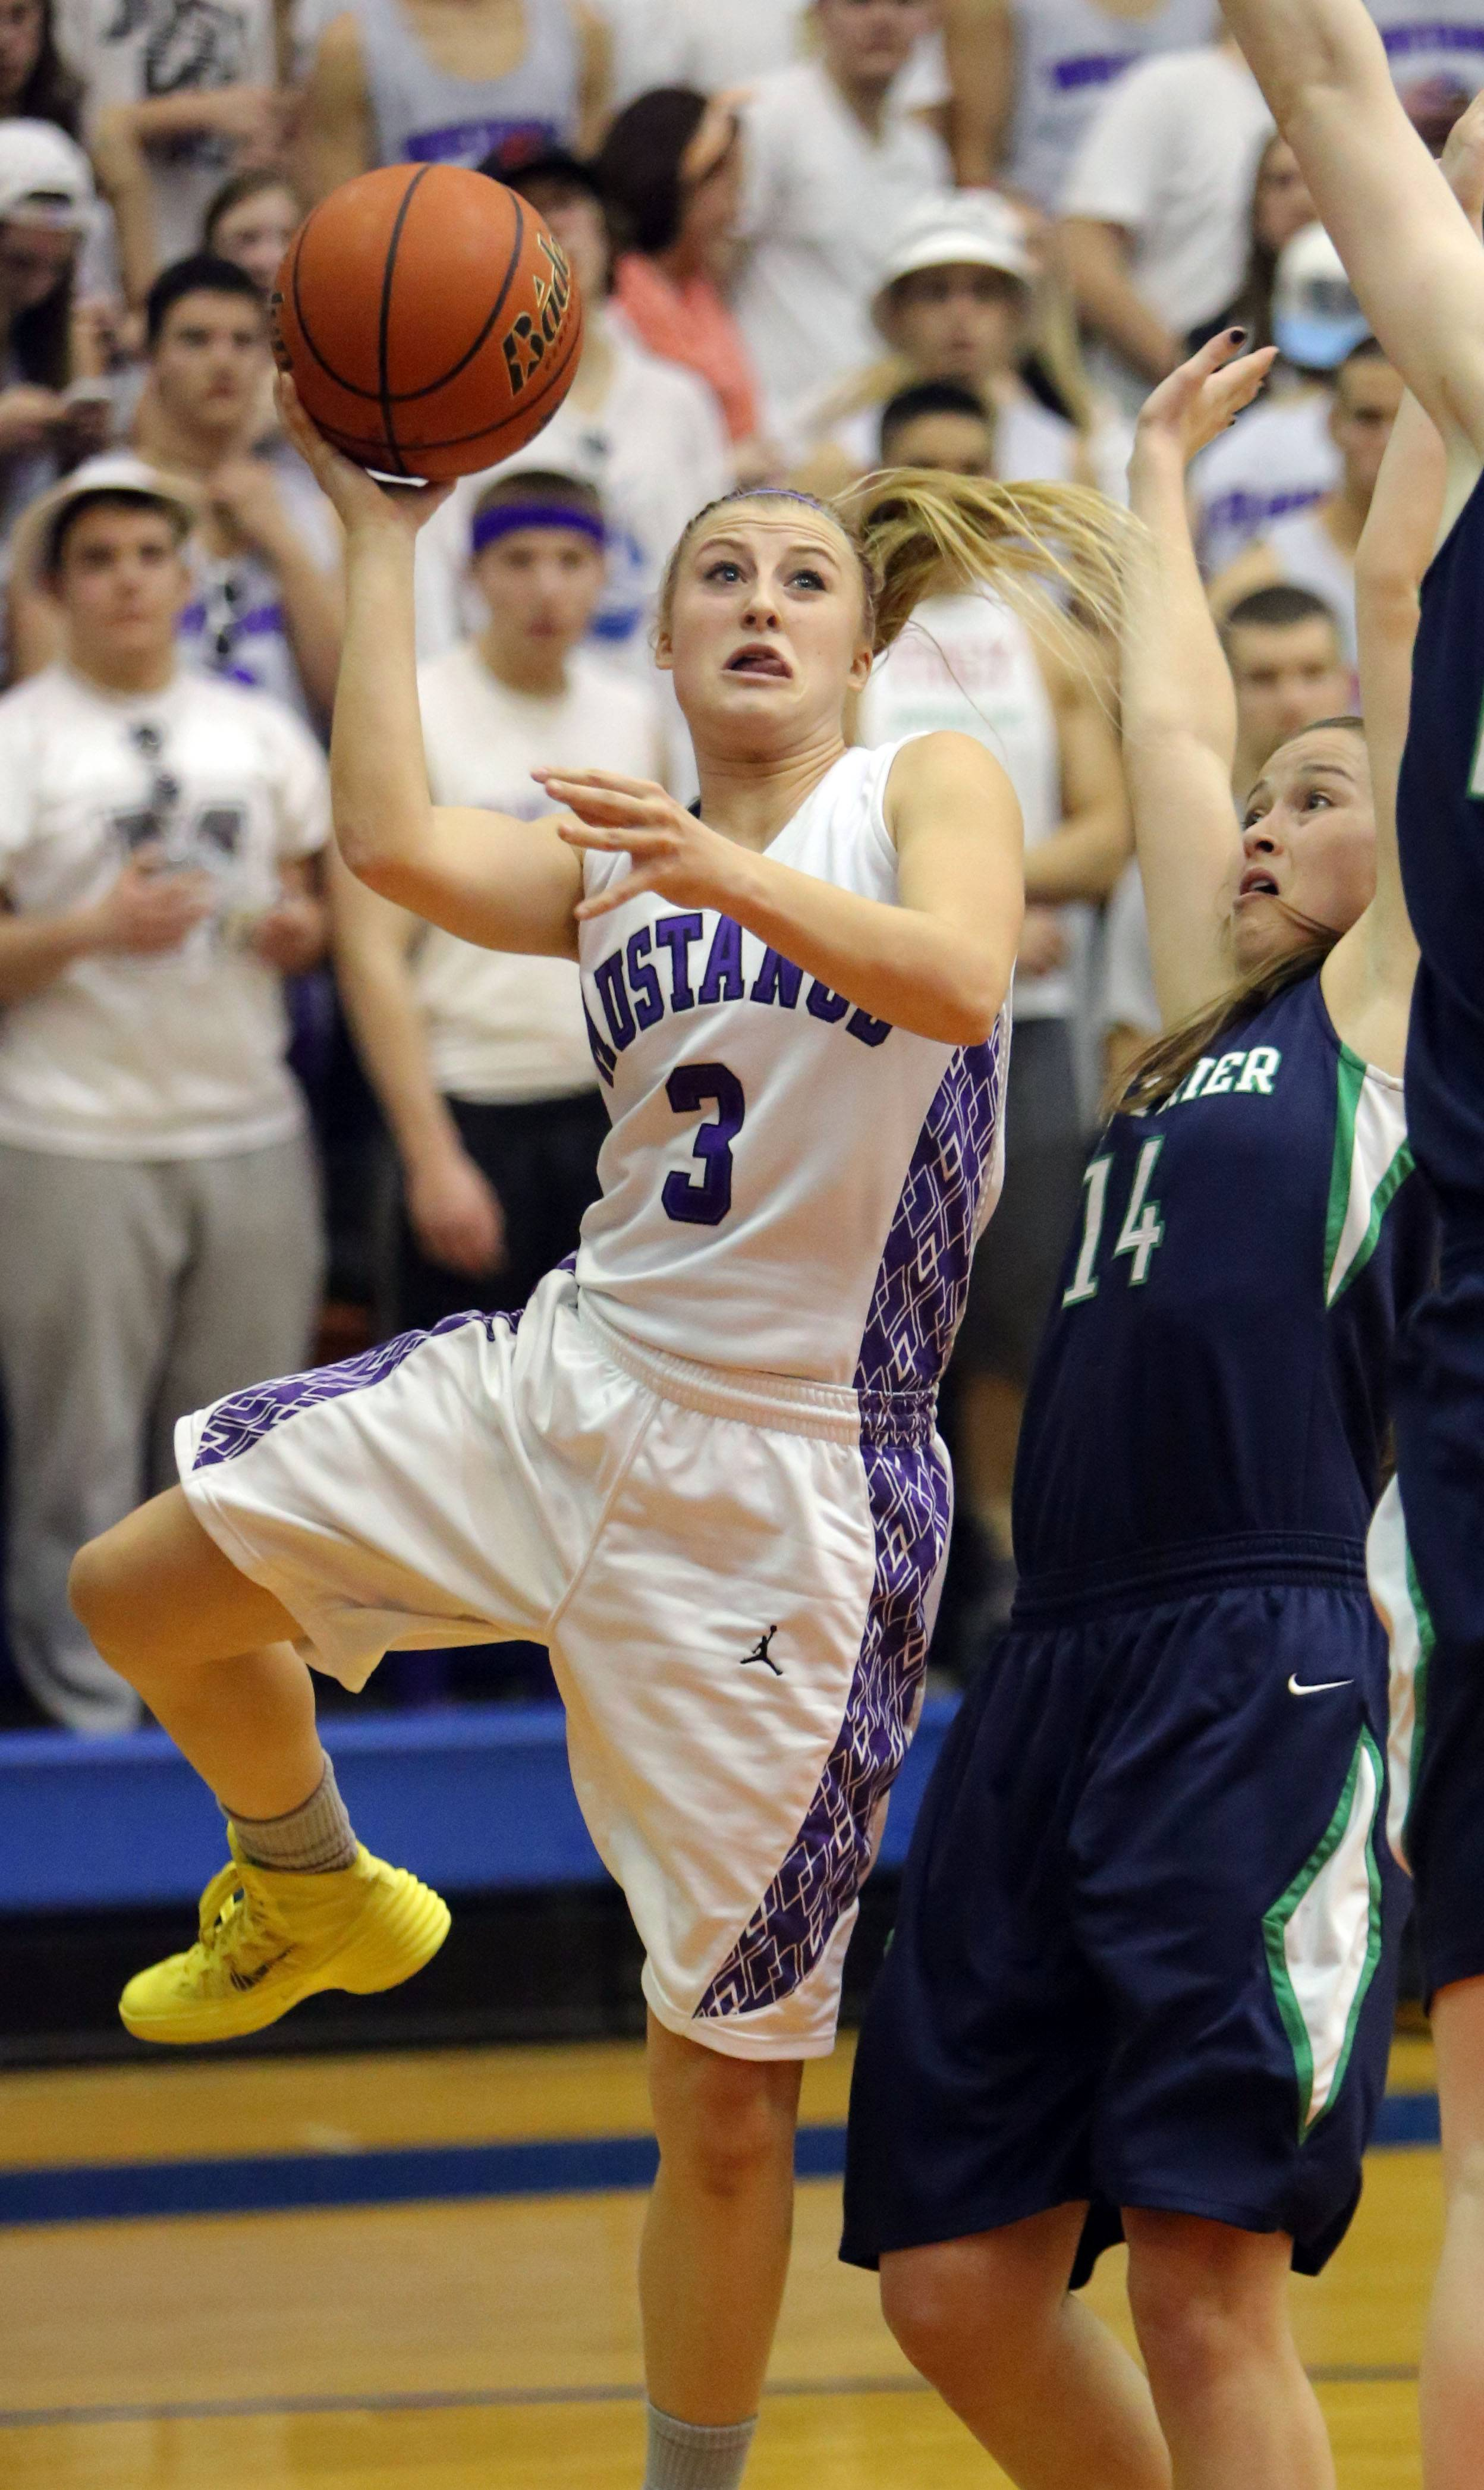 Rolling Meadows' Jackie Kemph, left, drives on Jackie Welch in the girls Class 4A supersectional game at Hoffman Estates High School Monday.